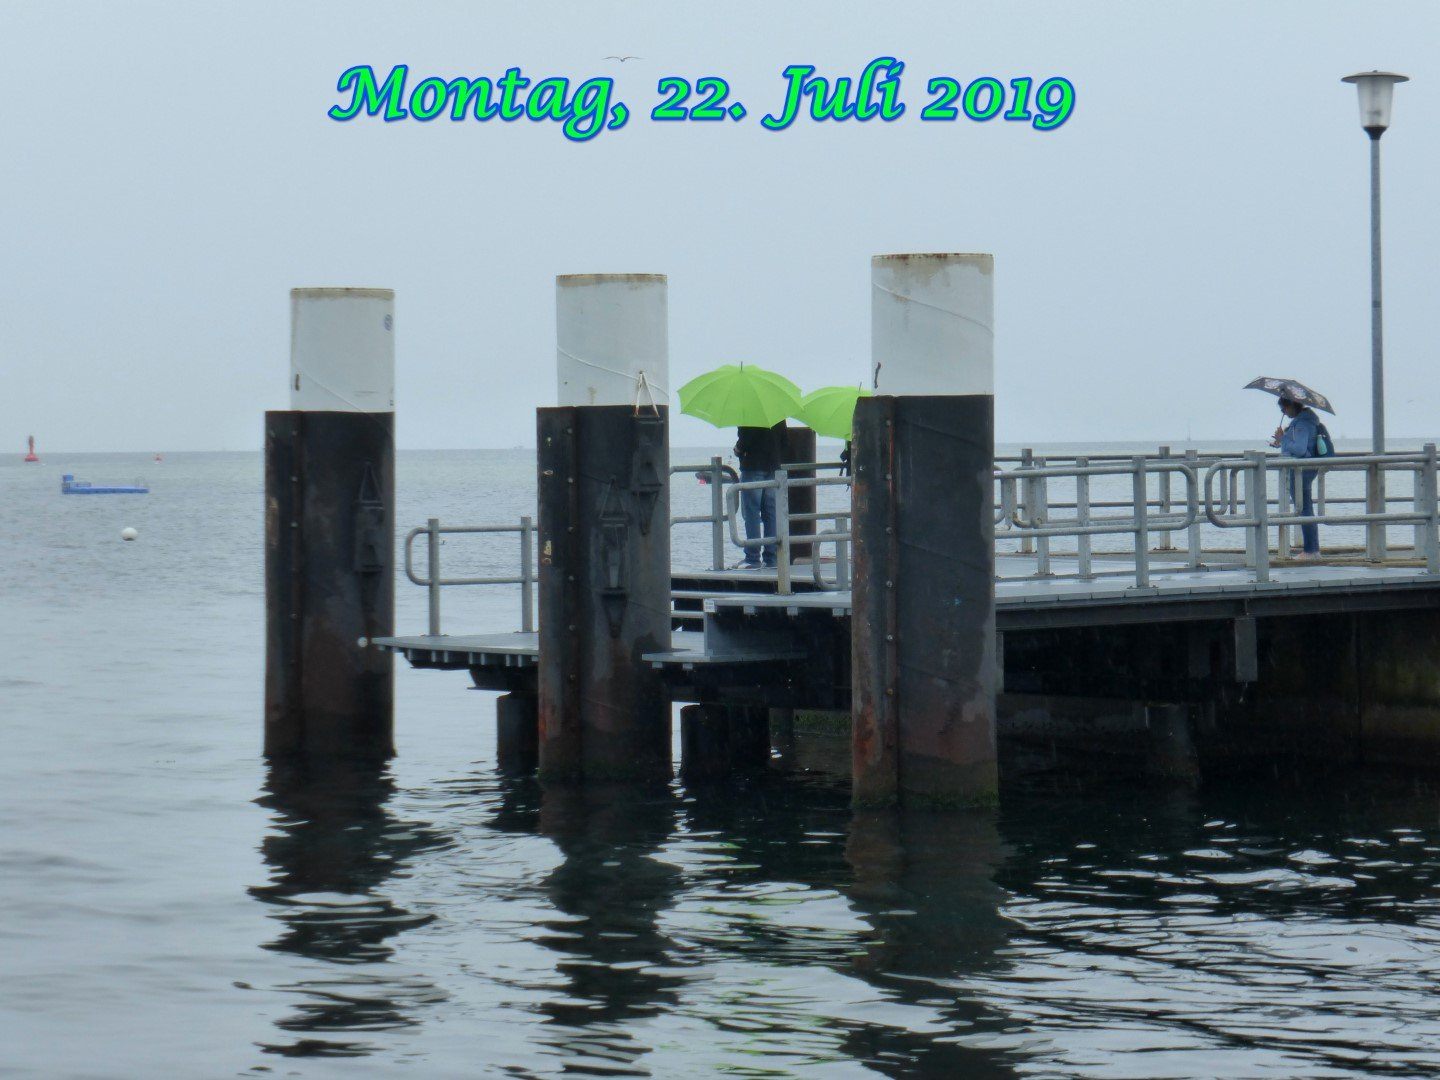 Regentag in Laboe